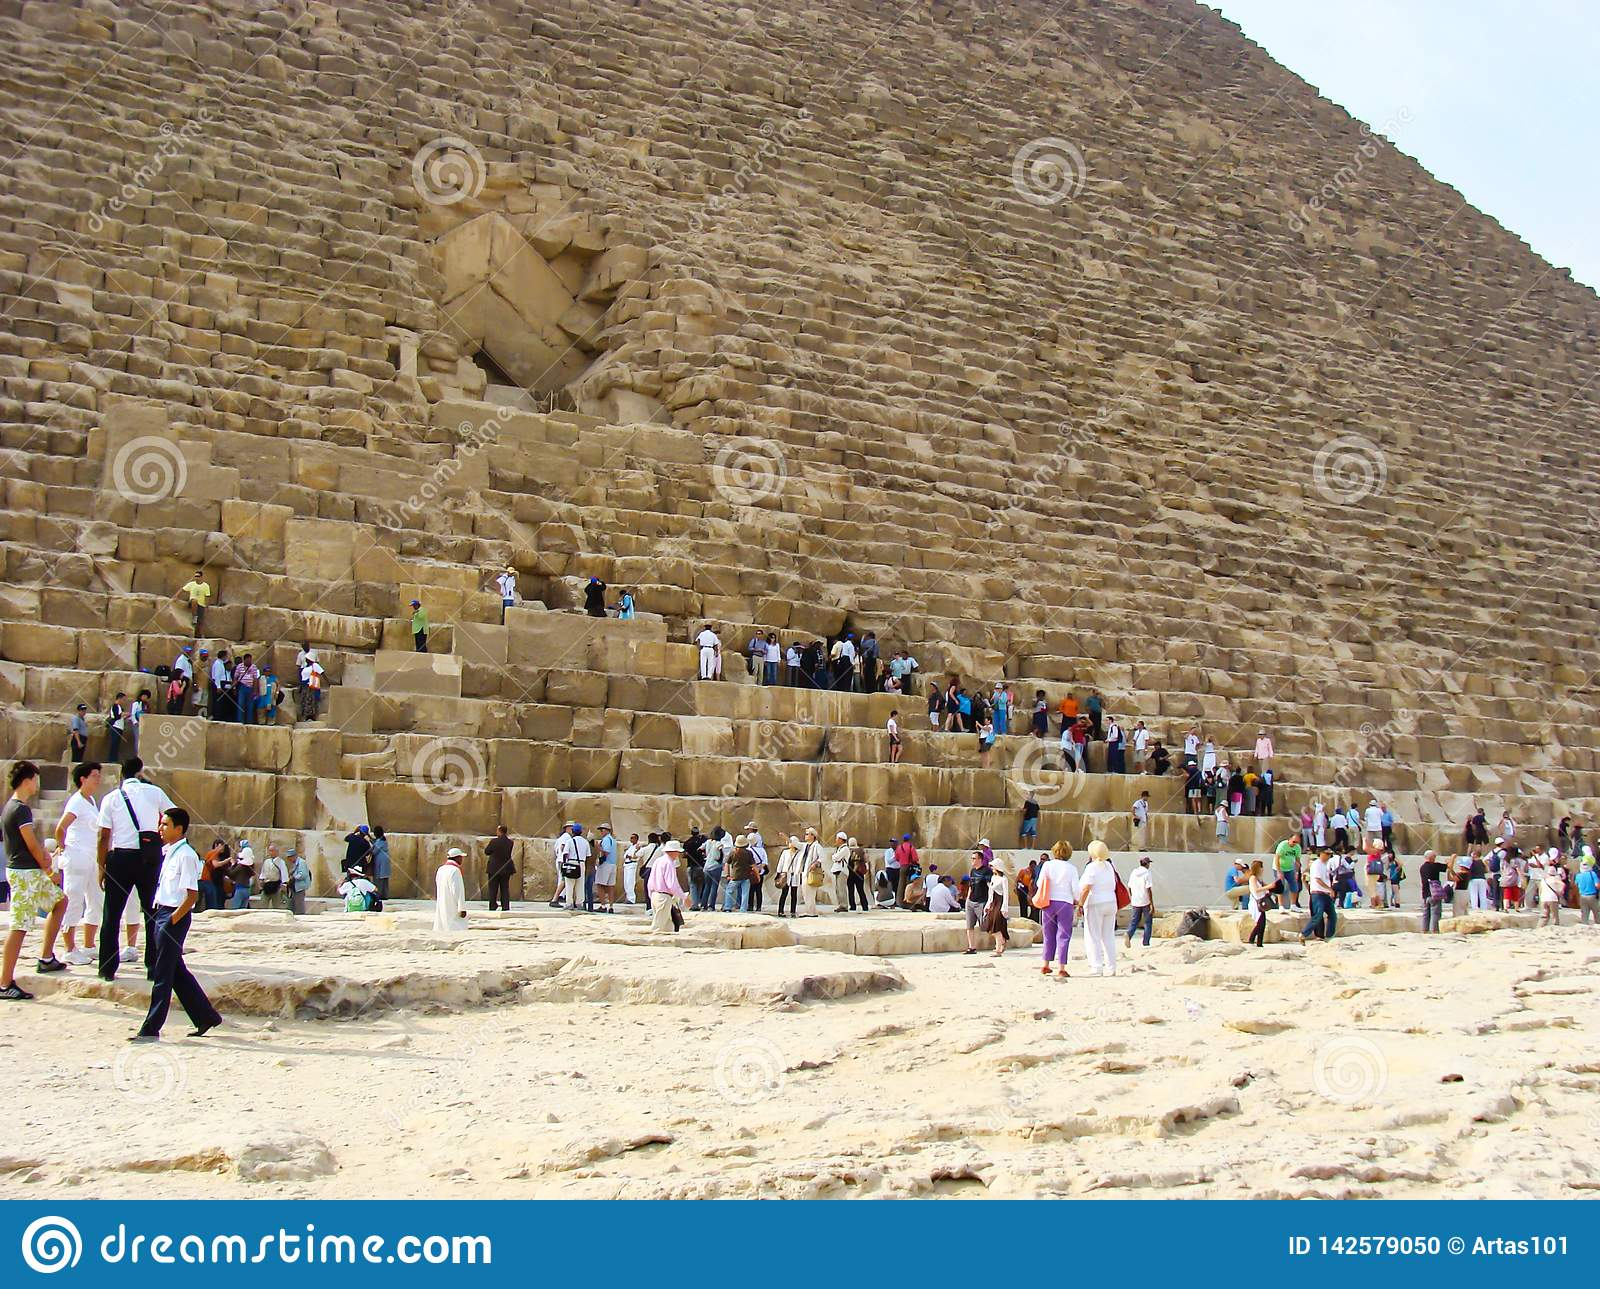 Giza Egypt October 20 2009 Tourists On A Tour Of The Pyramids Of Giza Editorial Image Image Of Africa Archeology 142579050